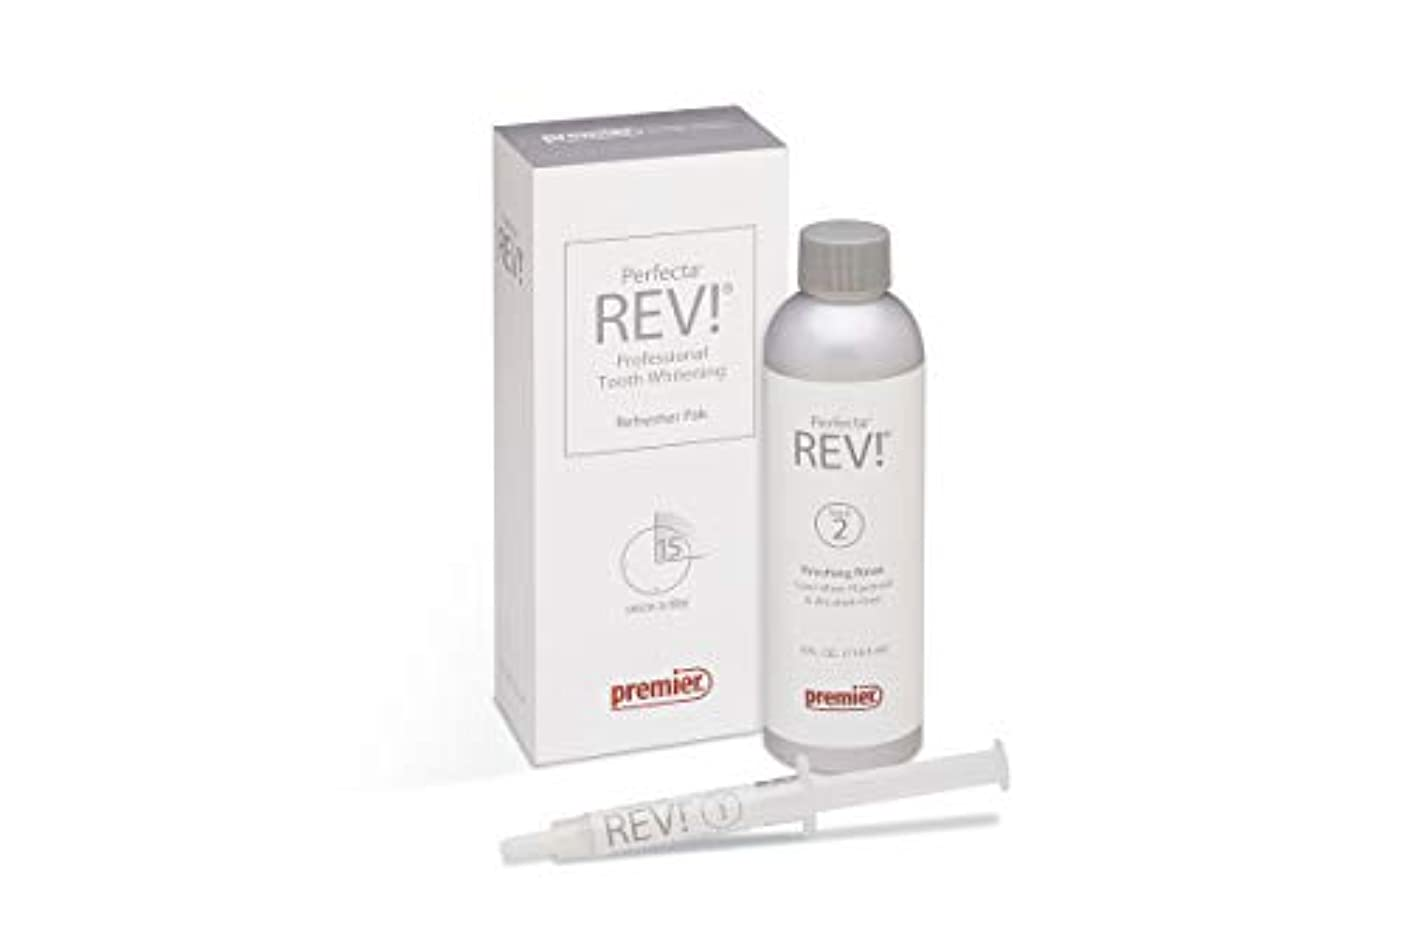 東方領事館湾Premier Perfecta RevリフレッシャPak ( 4000141 ) 14 % Teeth Whitening Gel and Rinse Whitening Oral Care